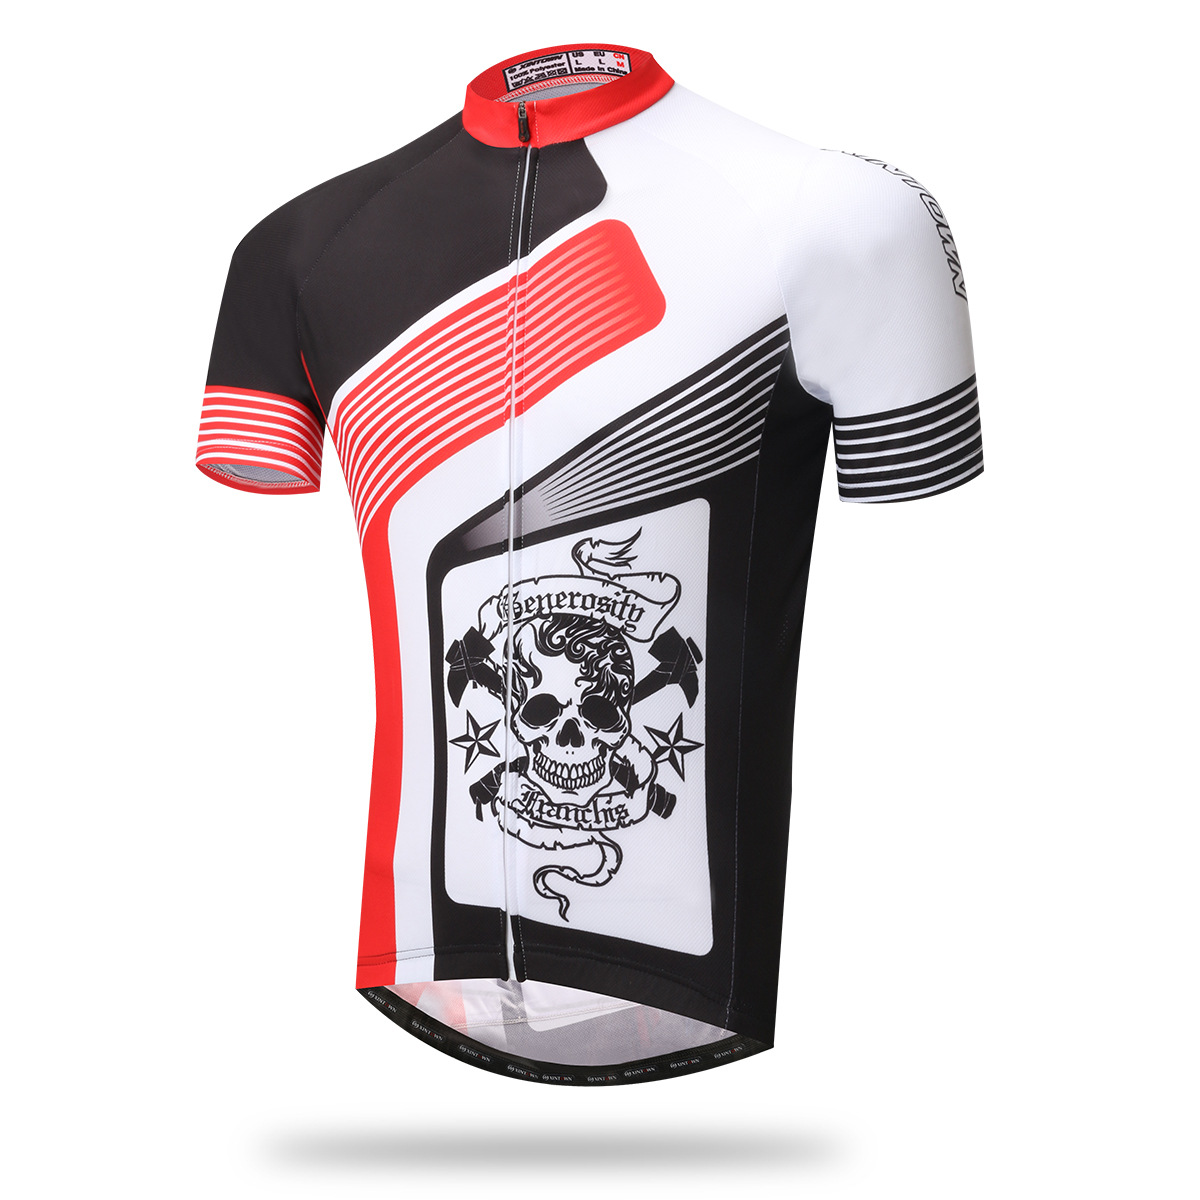 XINTOWN Star Wang riding shirt summer short-sleeved bicycle outdoor breathable quick-drying clothing sport thermal underwear